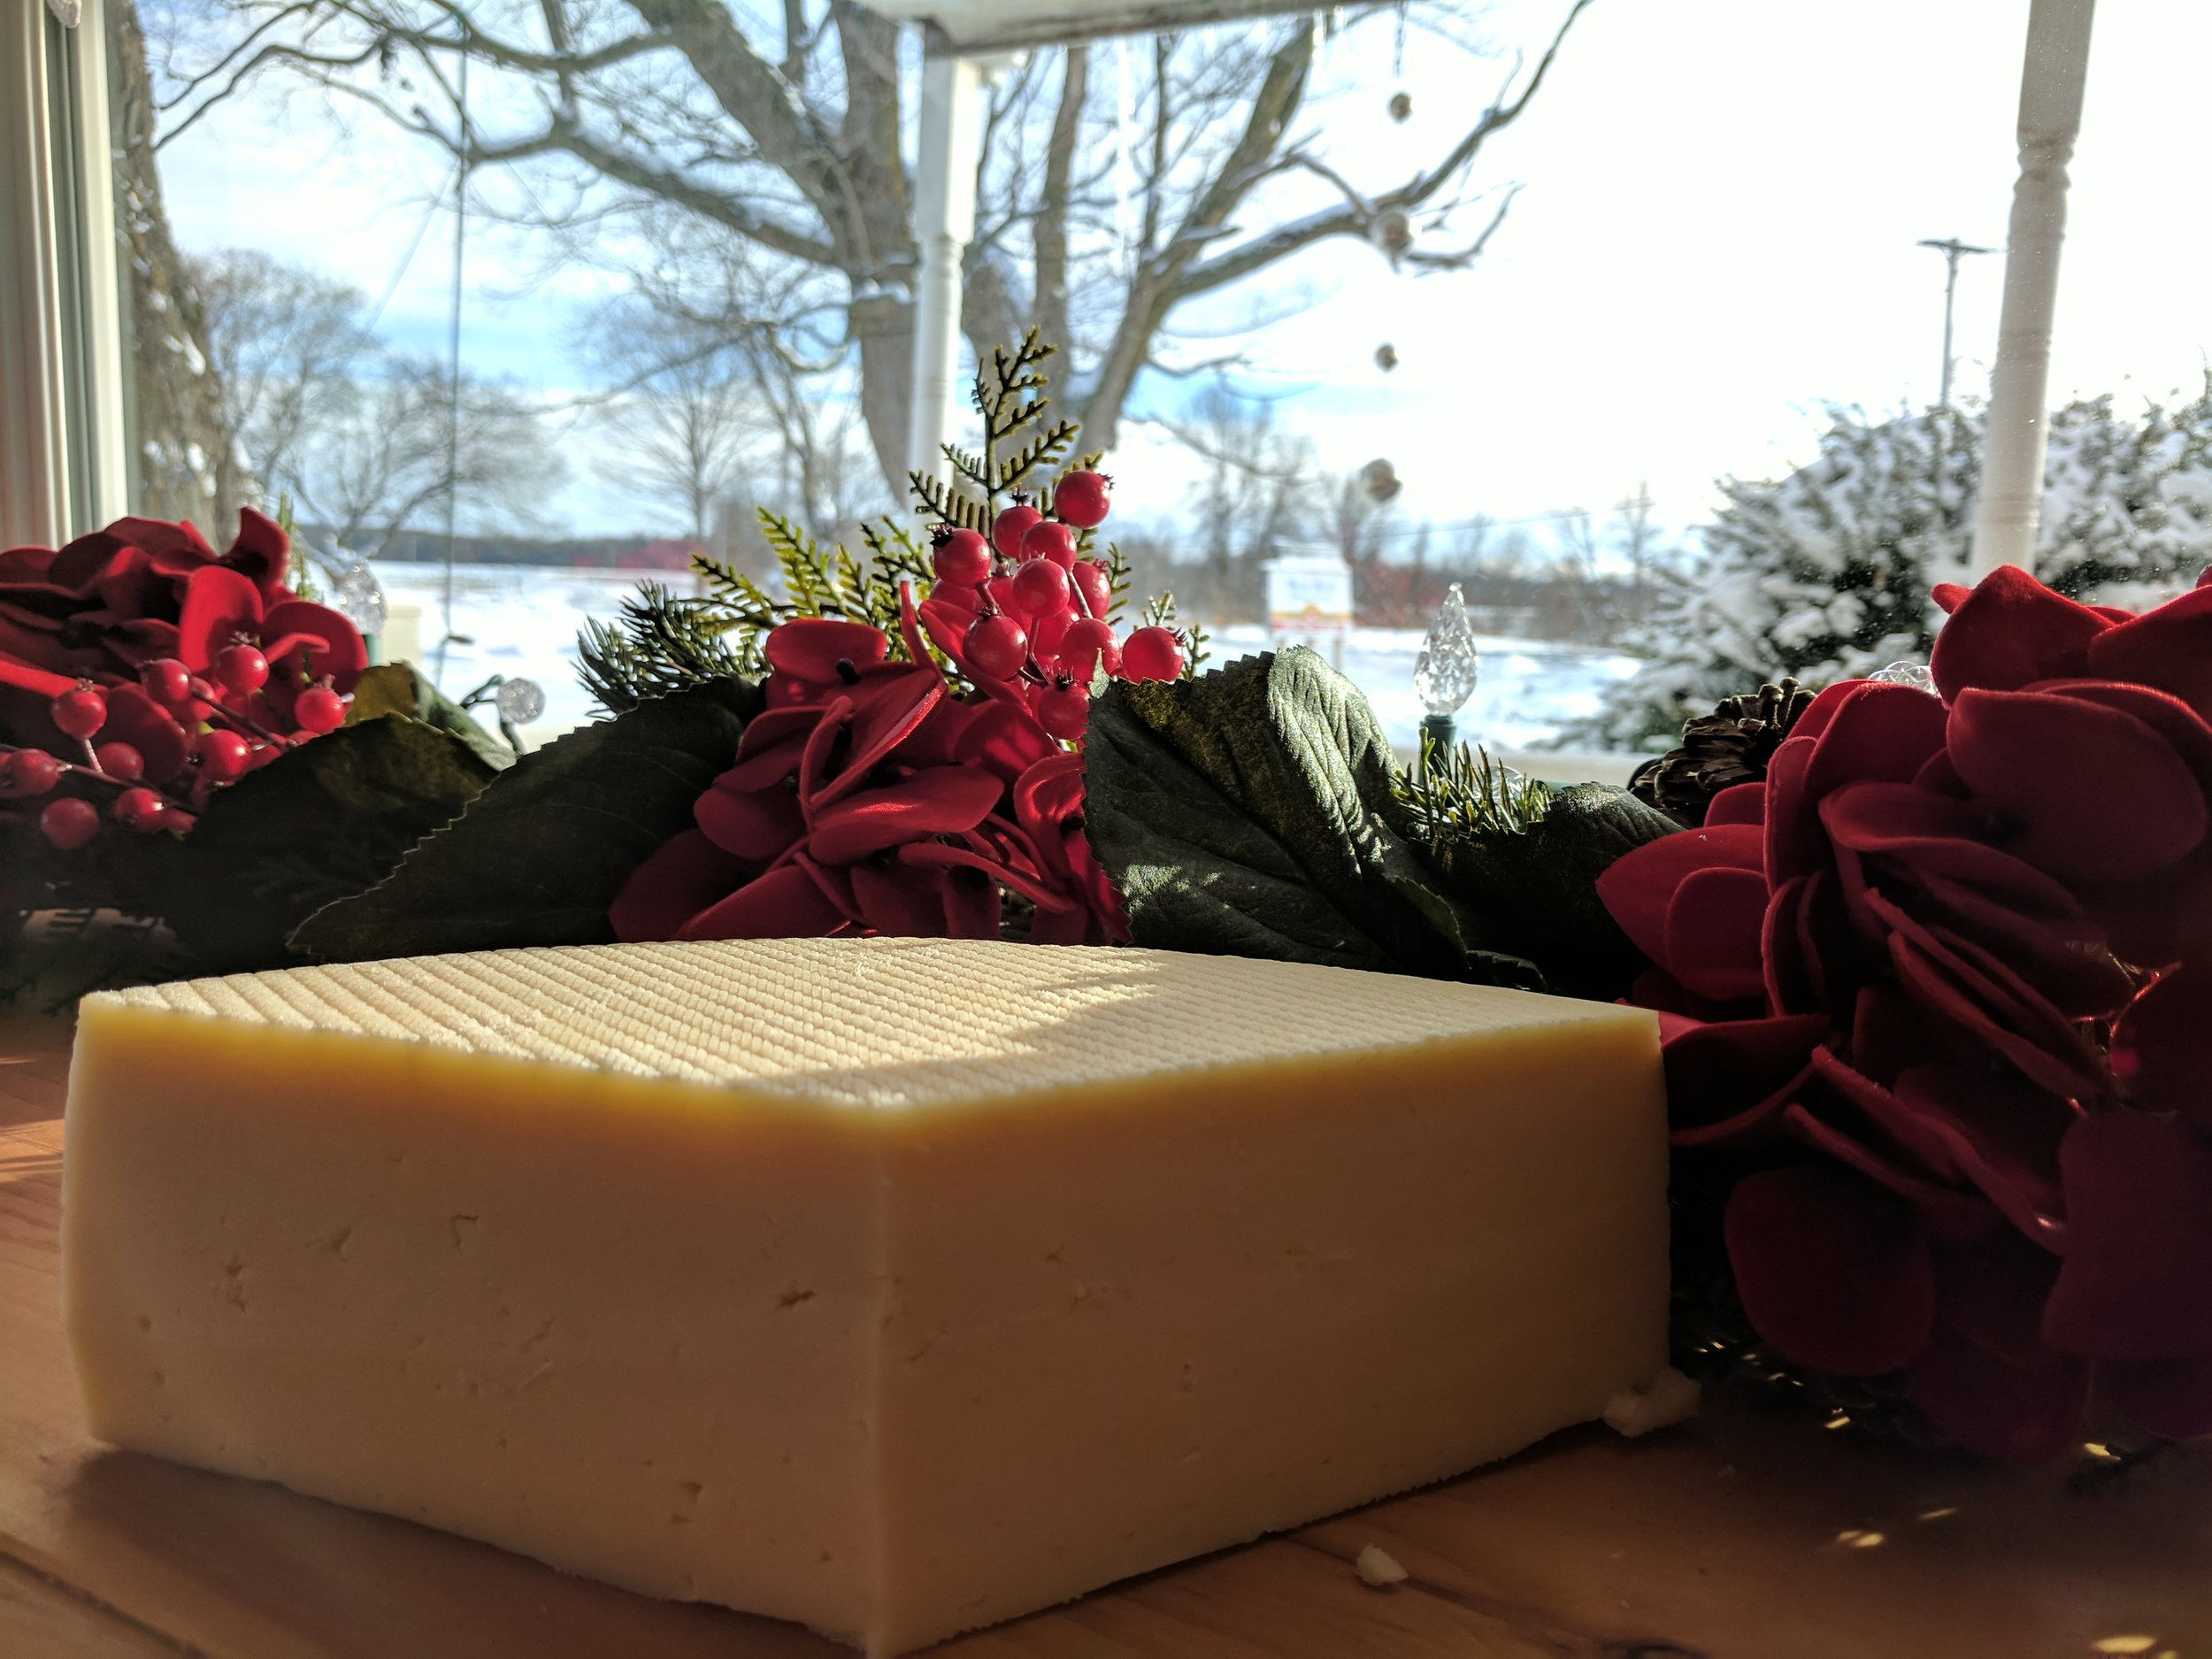 Mount Titus - Our version of a Gruyere; it is produced as a raw milk cheese that is aged at least 60 days. It is mild and nutty, and you get a hint of old world Swiss flavor.Mt. Titus received an Award of Excellence at the 2012 New York State Fair.